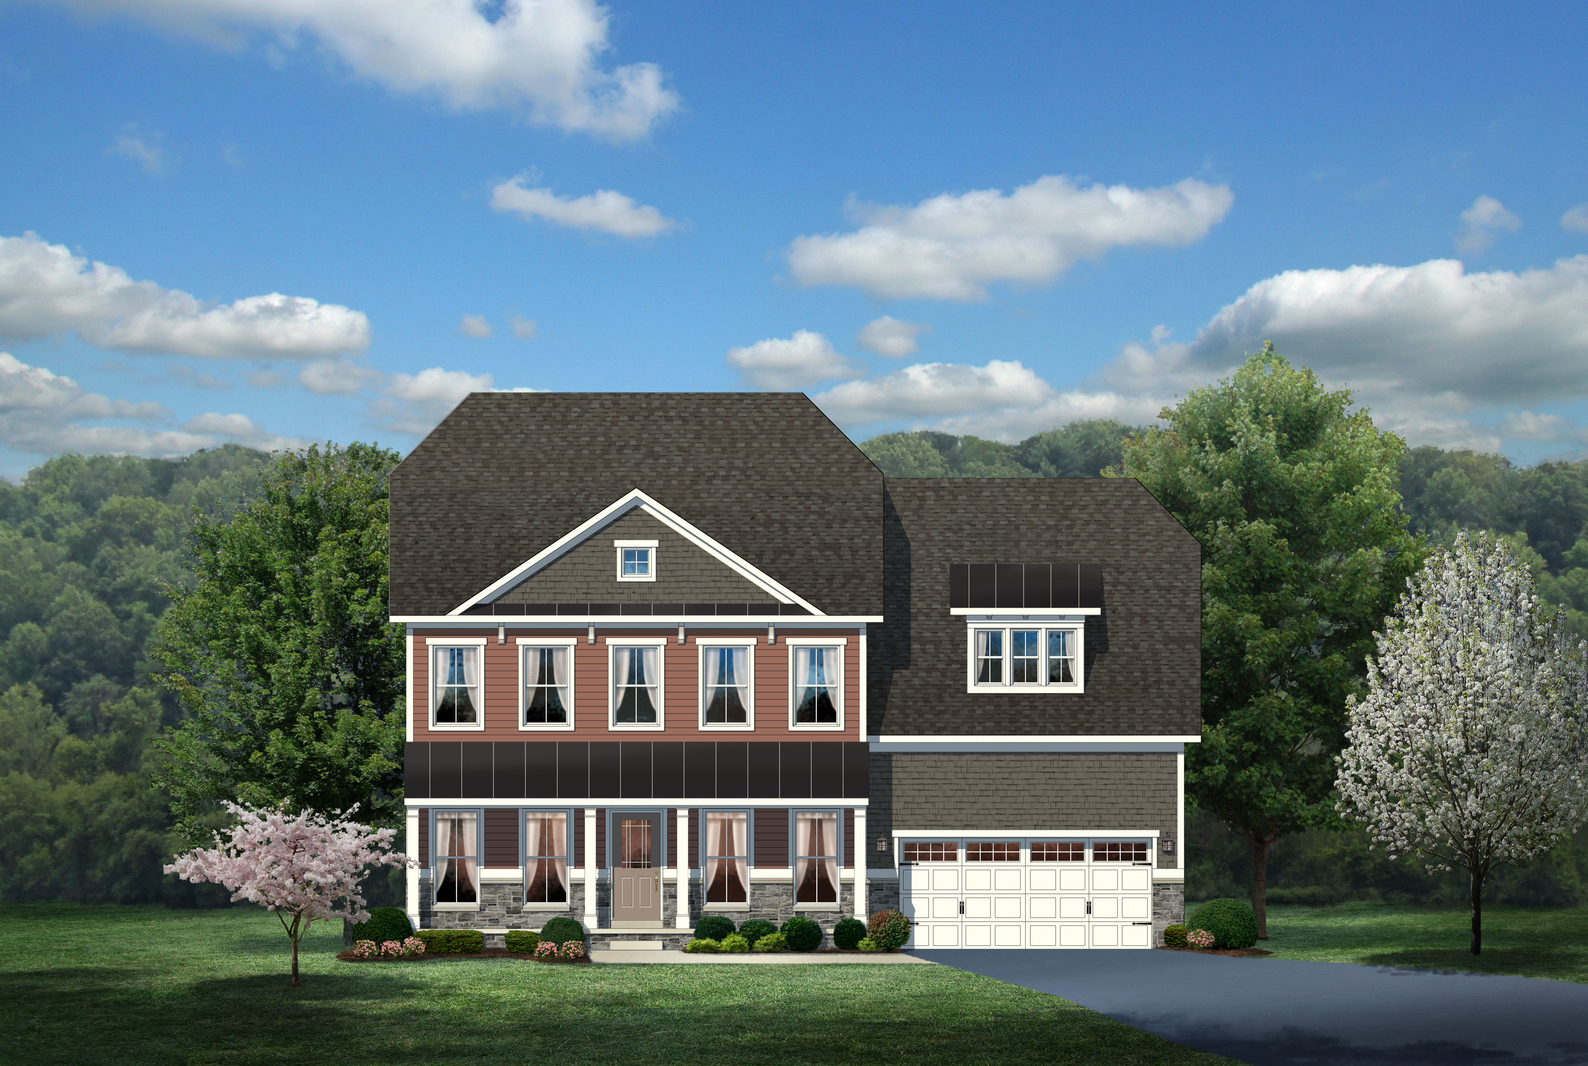 New Construction Single Family Homes For Sale Ravenna: New Construction Single-Family Homes For Sale -James-Joyce